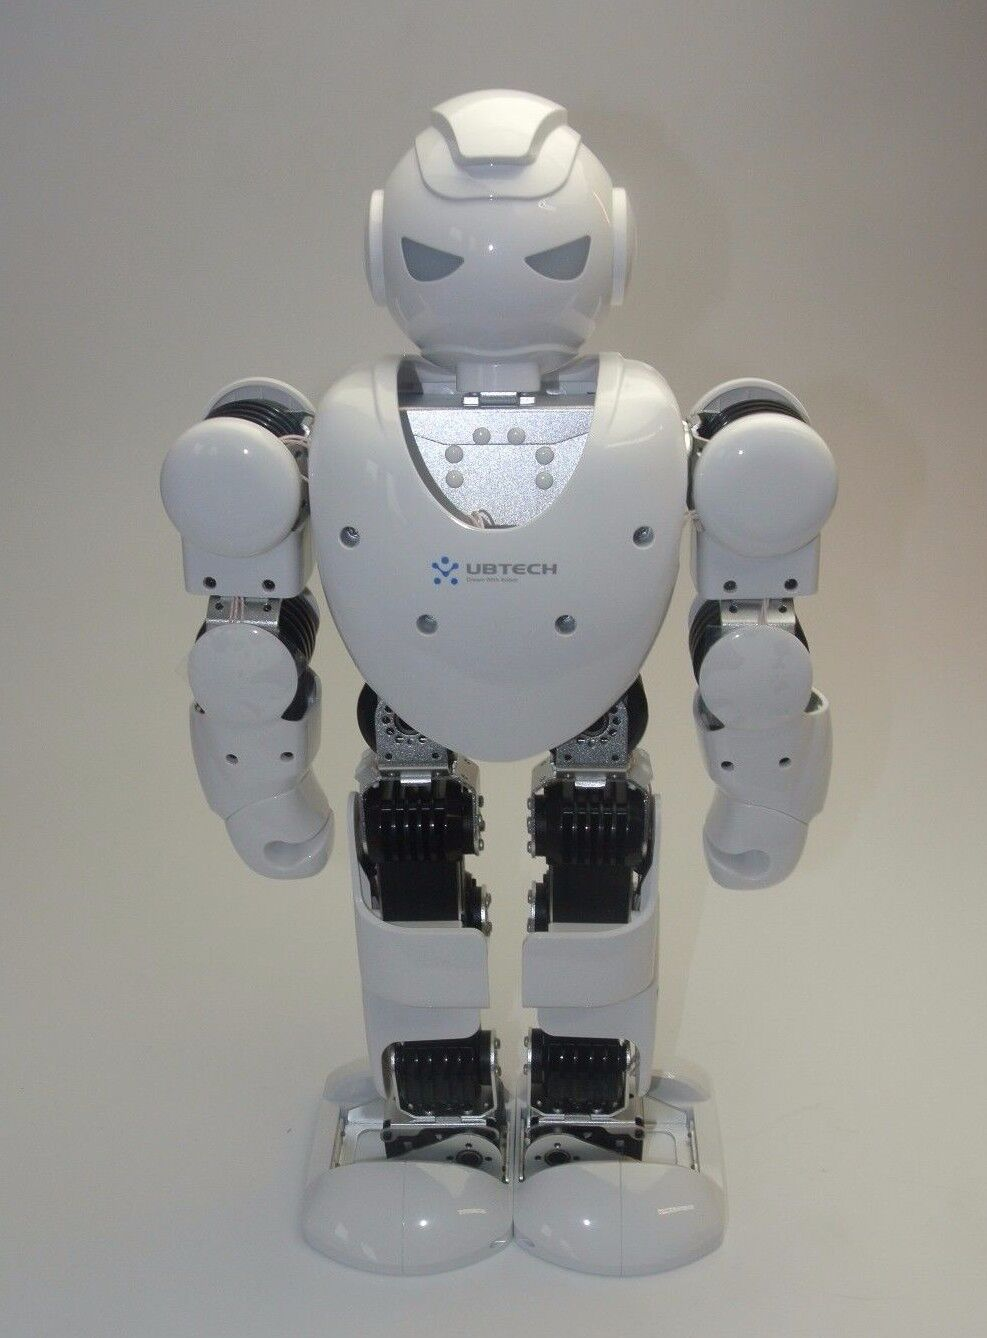 Summary Ubtech Alpha 1s Intelligent Humanoid Robotic White Robot Find Helpful Customer Reviews And Review Ratings For At